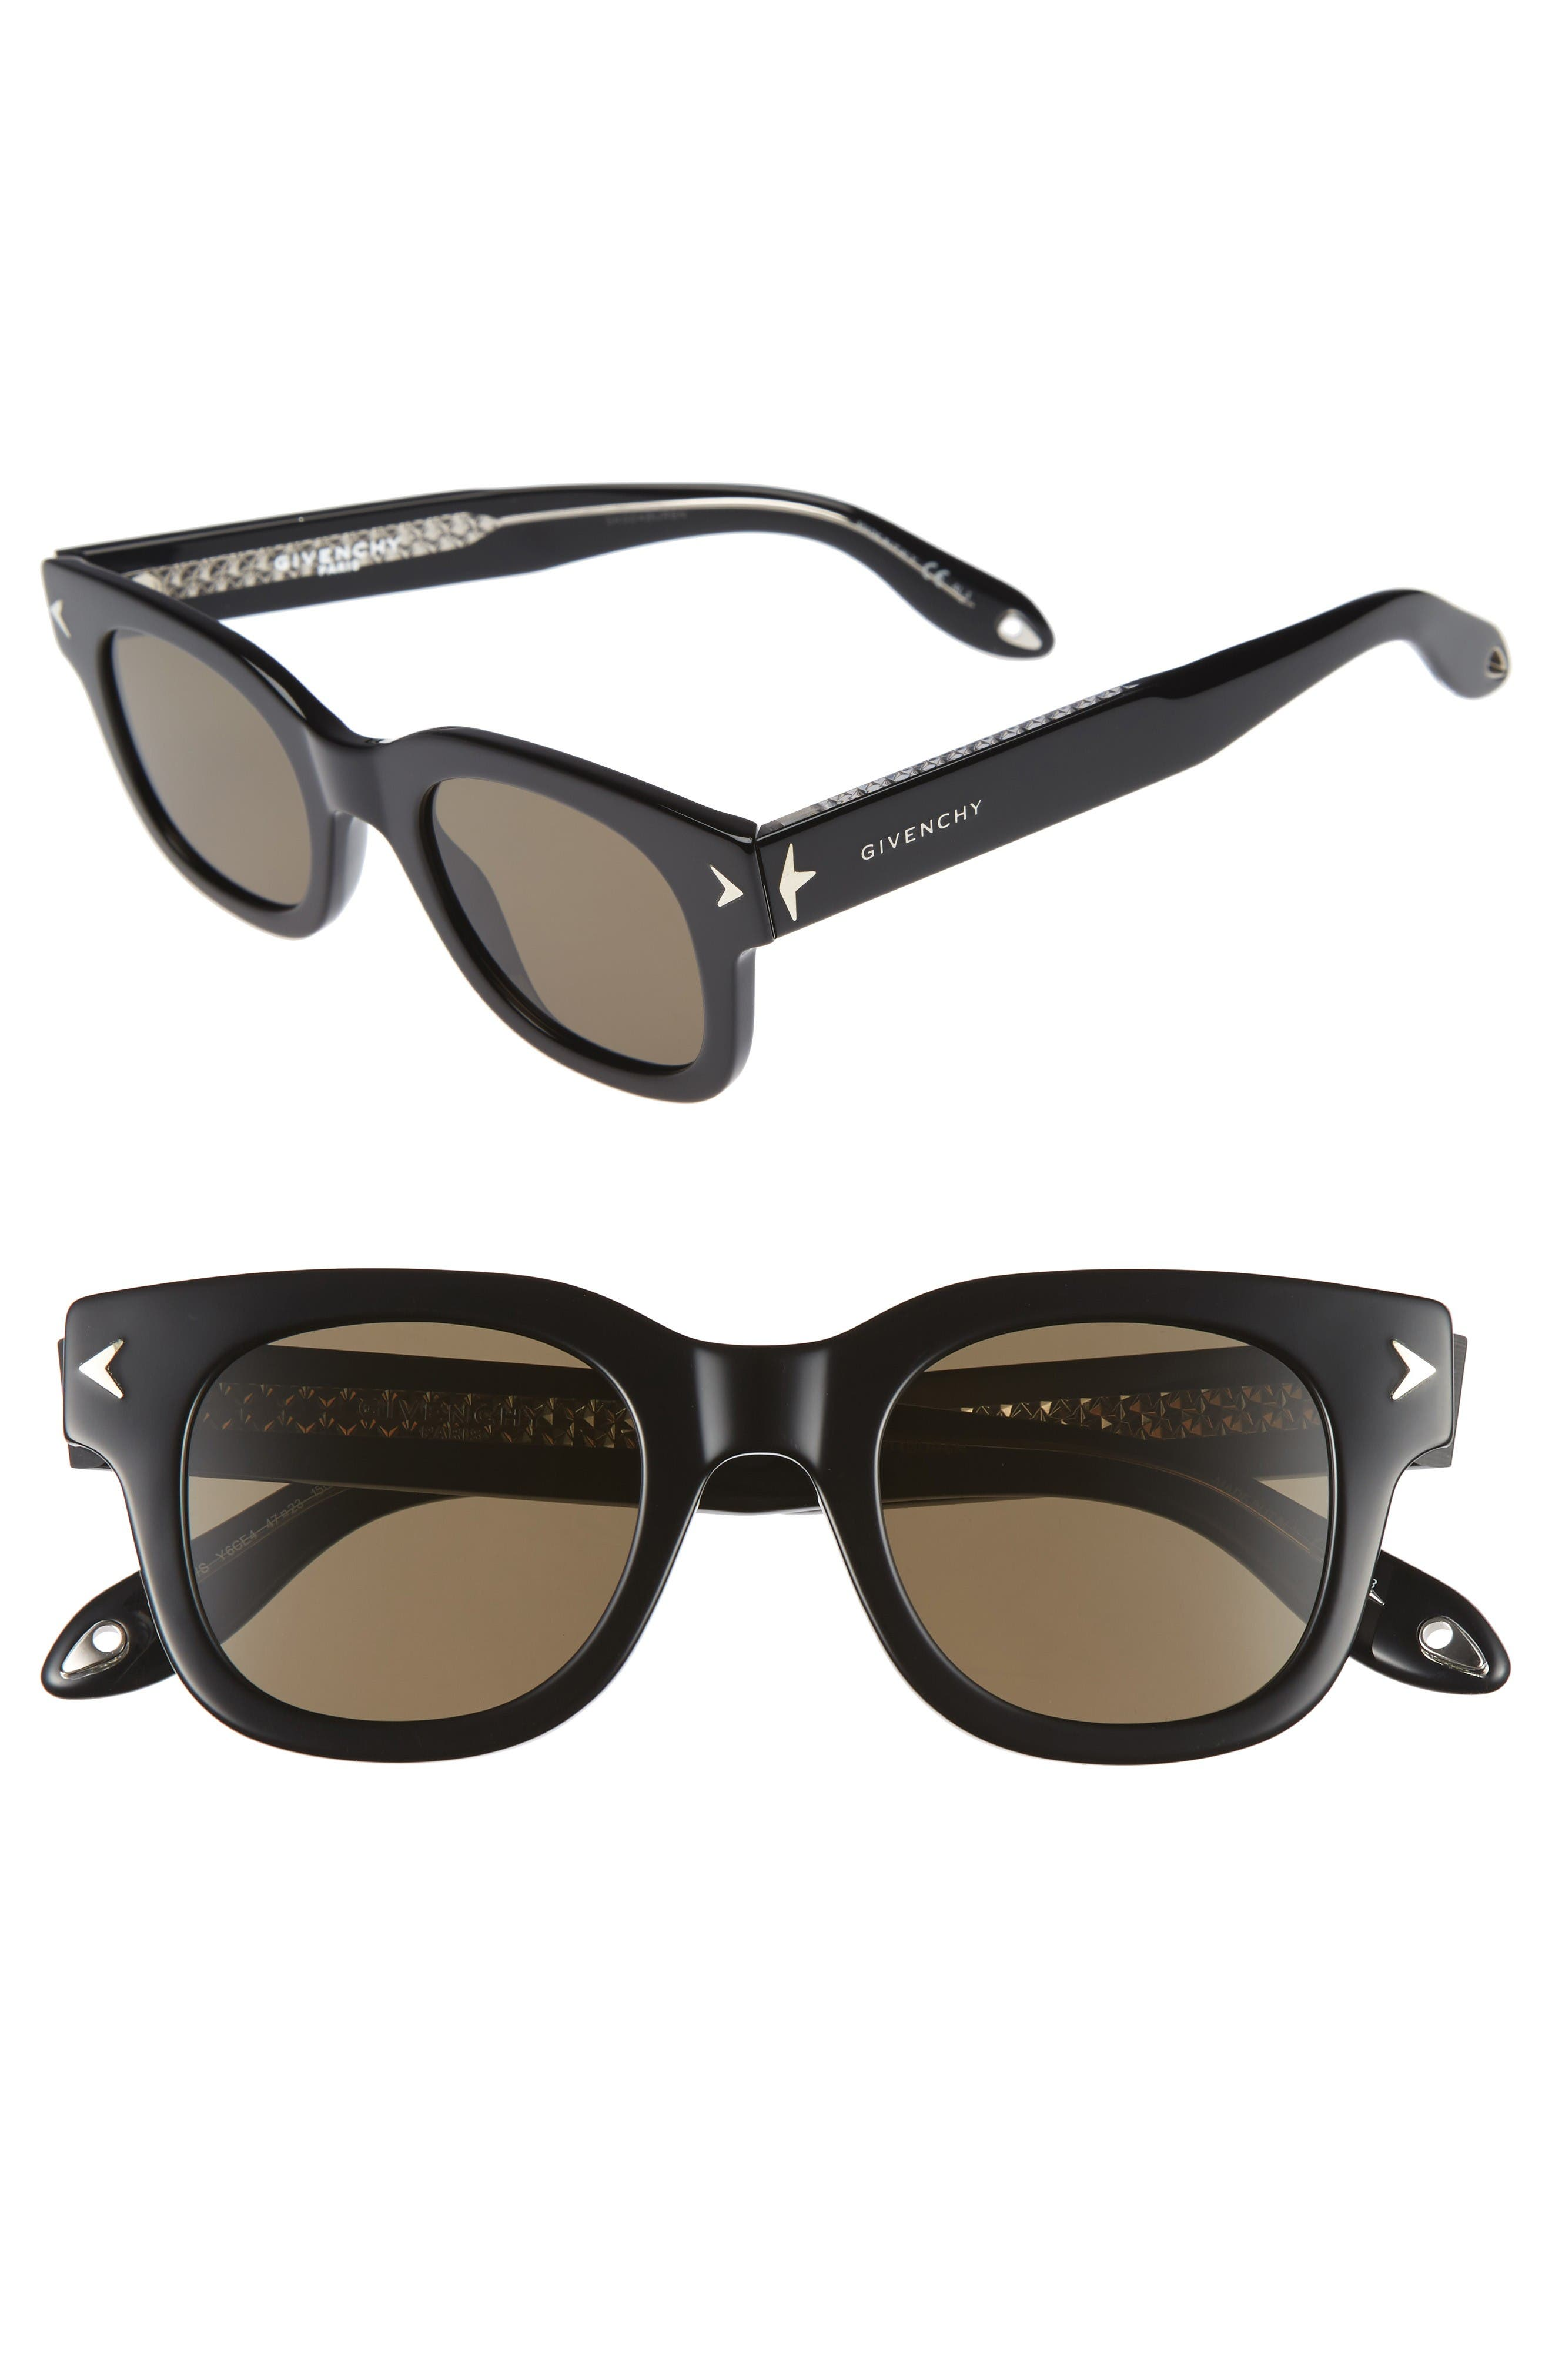 GIVENCHY 7037/S 47mm Sunglasses